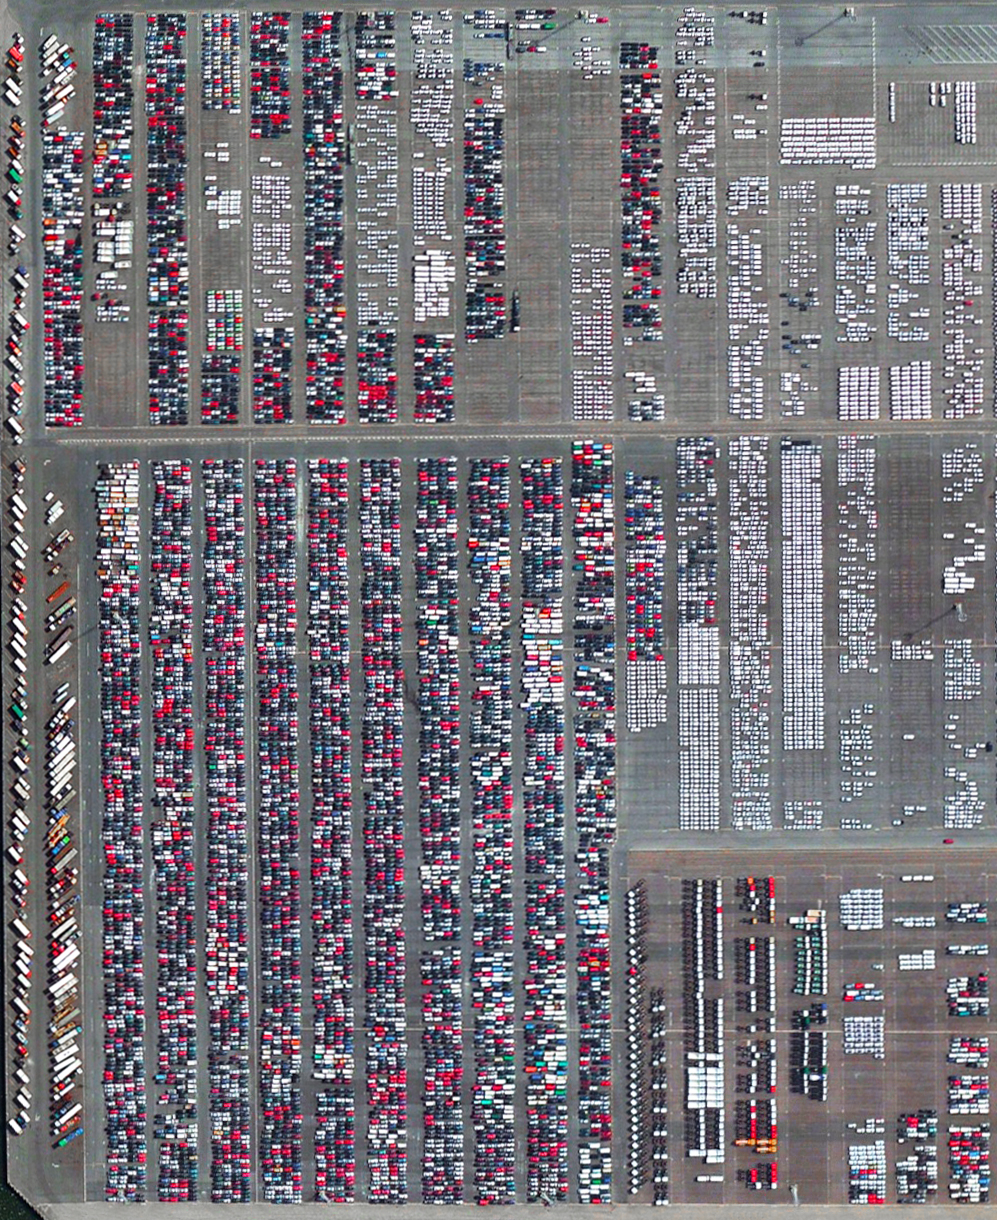 11/16/2015    Port of Antwerp     Antwerp, Belgium    51°16′12″N 4°20′12″E      Automobiles and semi-trailer trucks are unloaded and shipped at the Port of Antwerp in Belgium. In 2014, the facility moved nearly 1.2 million vehicles.